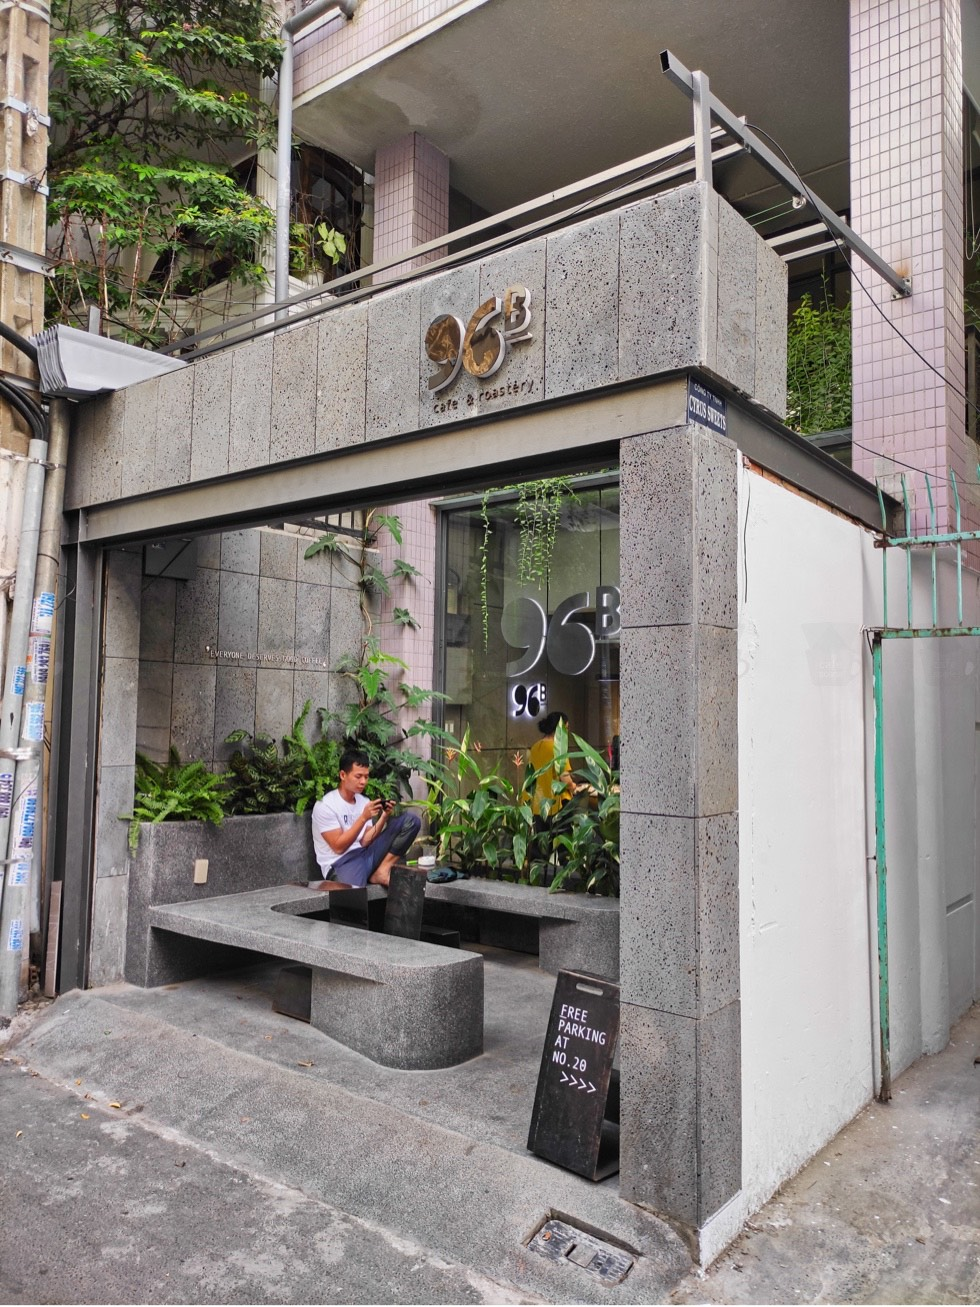 96B Cafe & Roastery Frontage